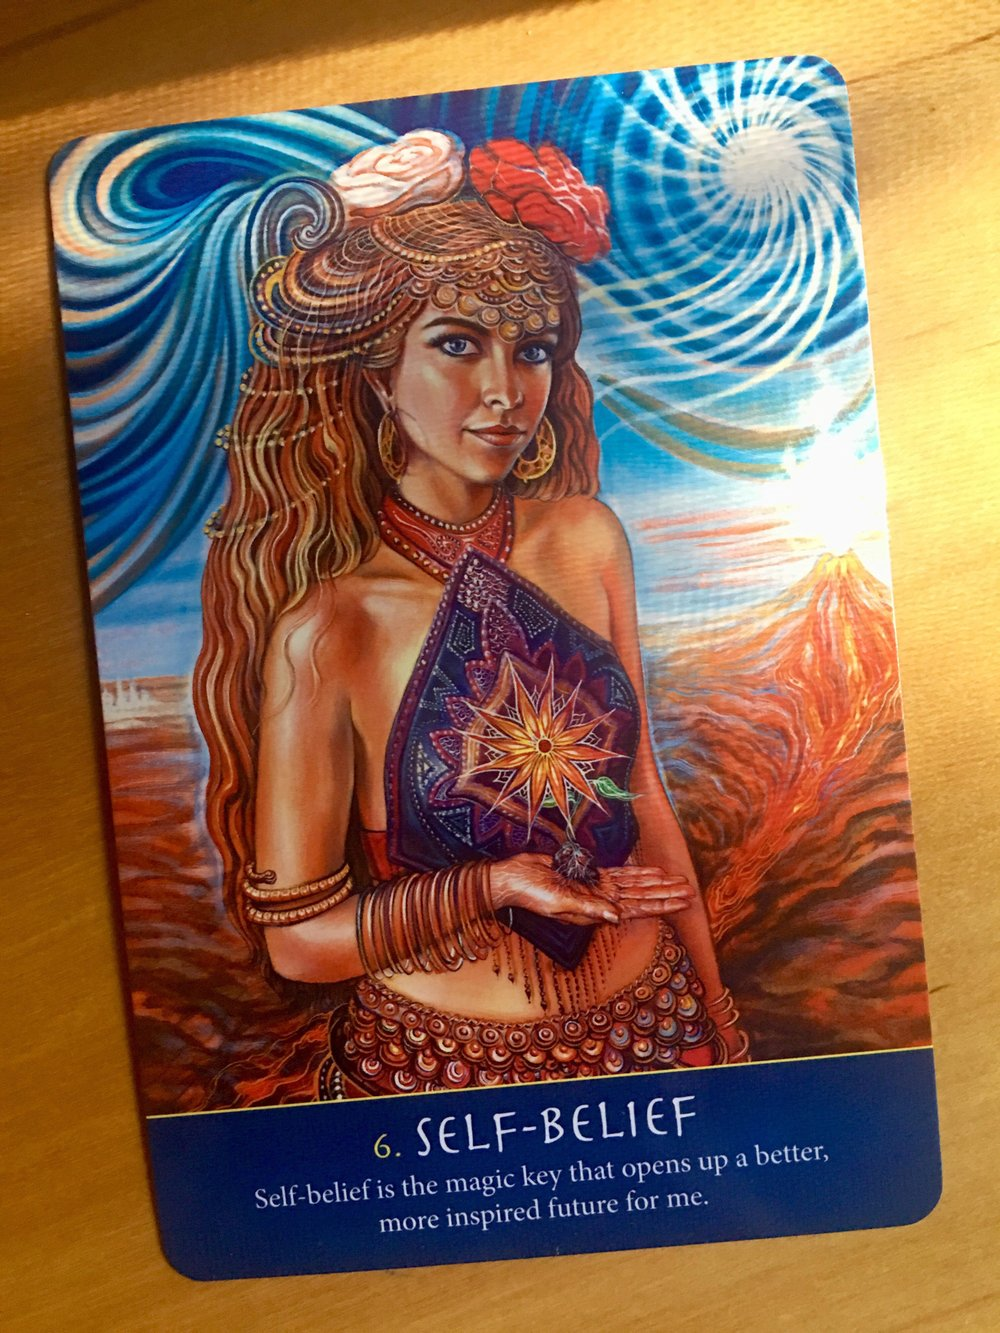 The oracle card I drew for today's training… - What stands out or speaks to you in the image and message? What feelings does the image stir in you? What inner response arises in you? How might that response be an answer to your question or intention?